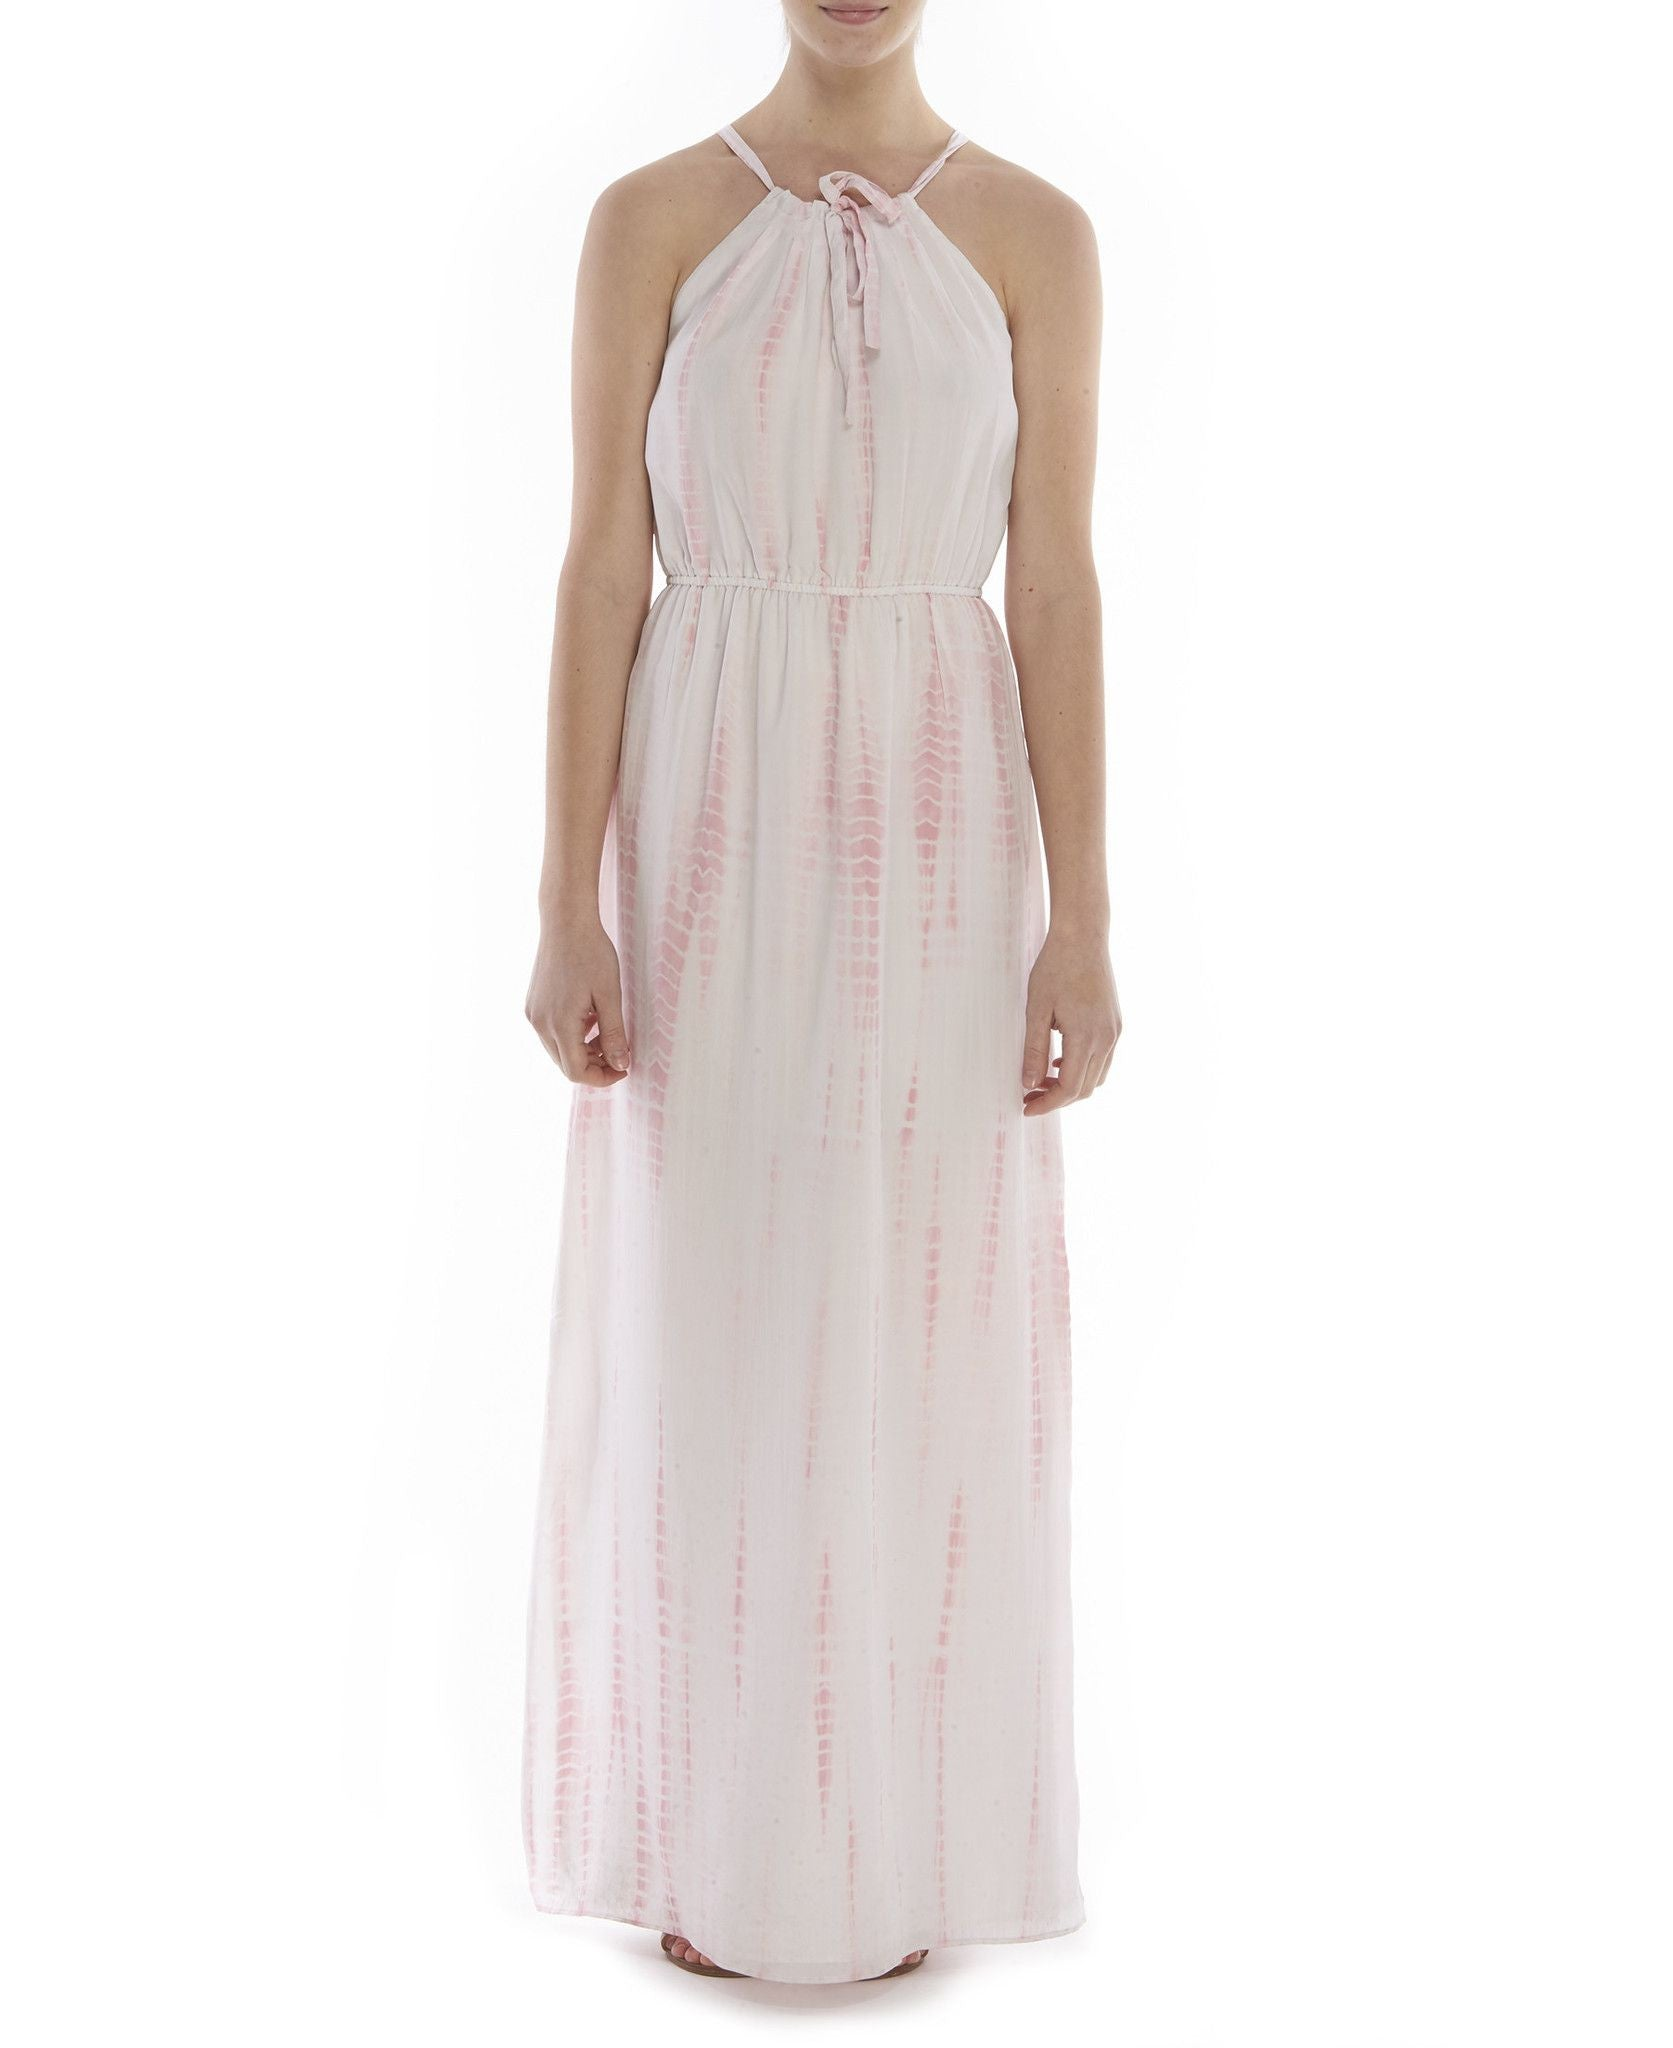 D334 FAYE CDC TIE FRONT MAXI DRESS COTTON CANDY